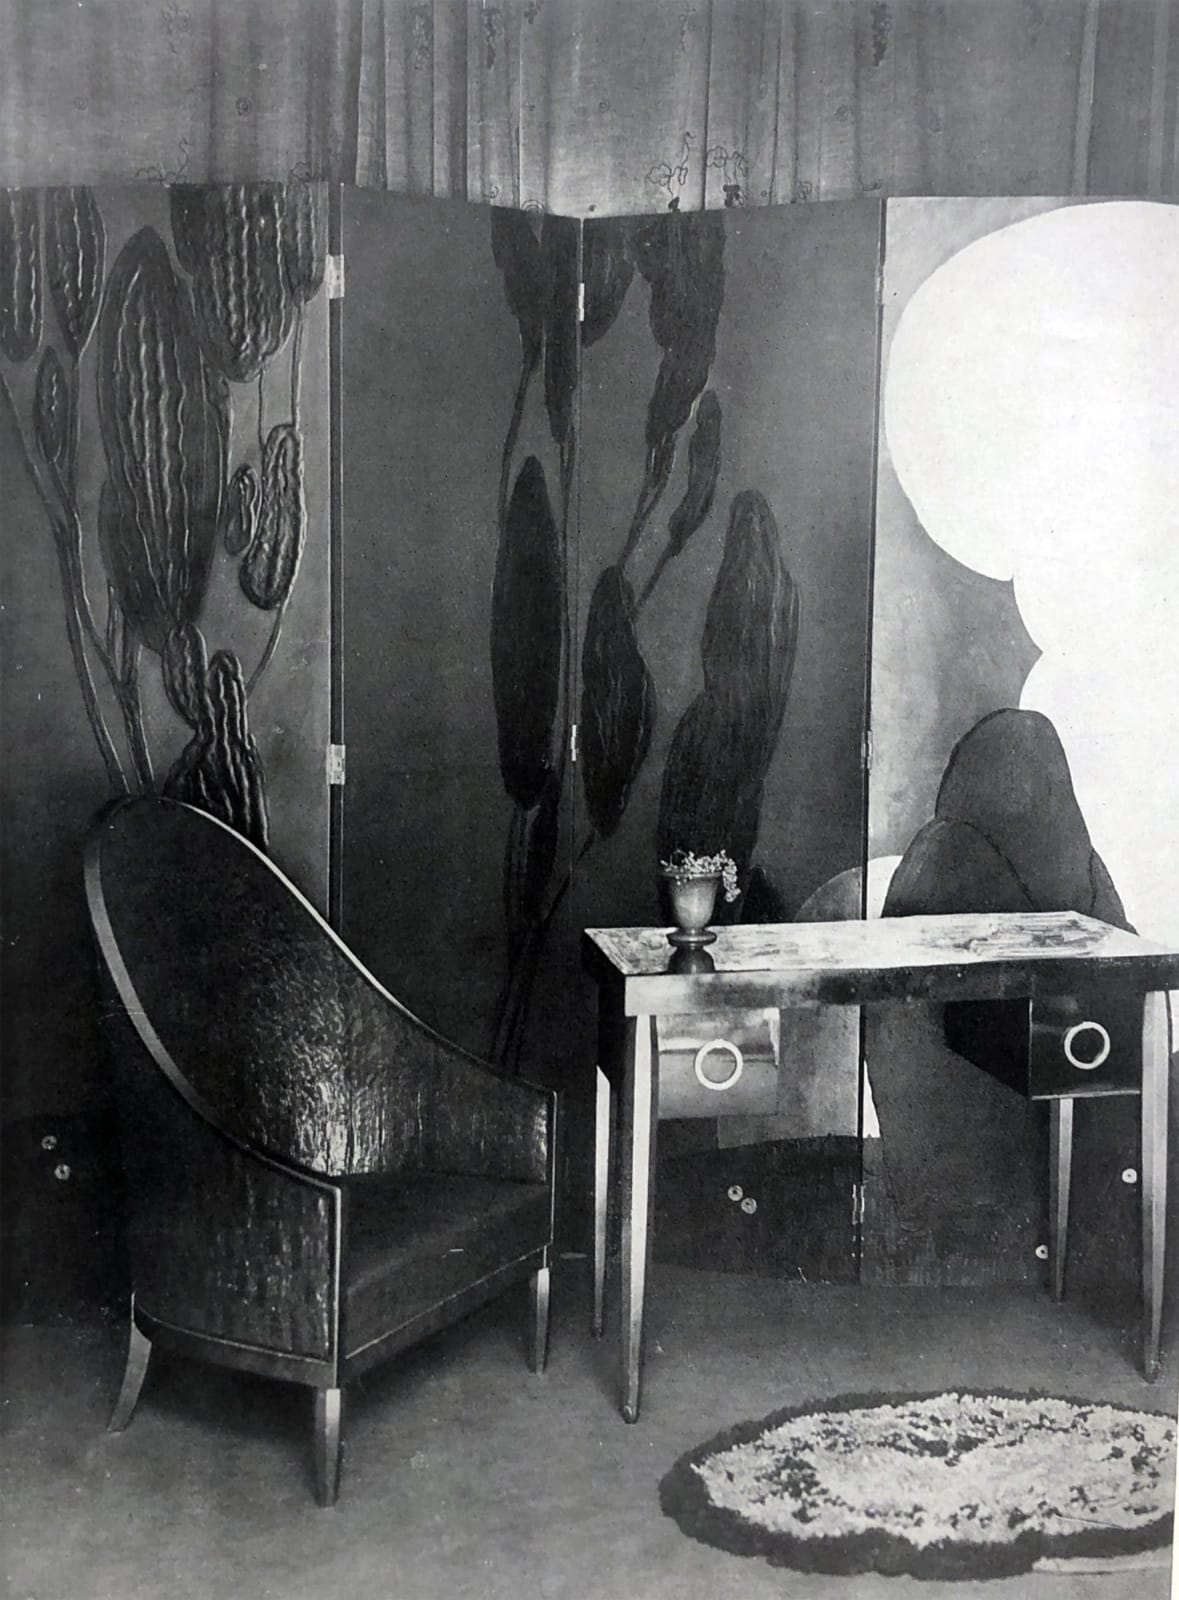 Art Deco furniture by DIM. Paris, 1925